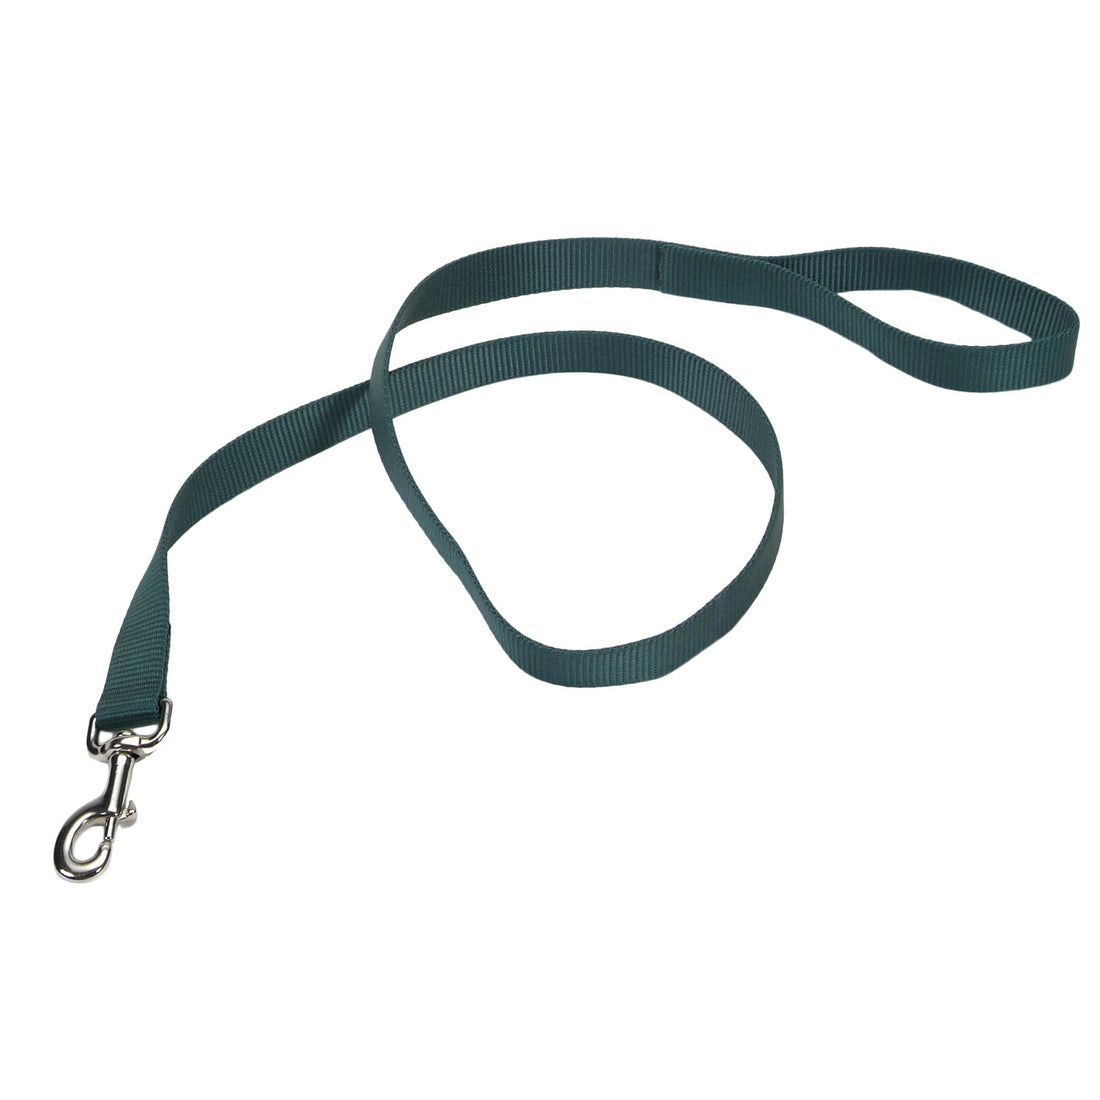 "Coastal Nylon Lead 4' - 5/8"" Hunter"